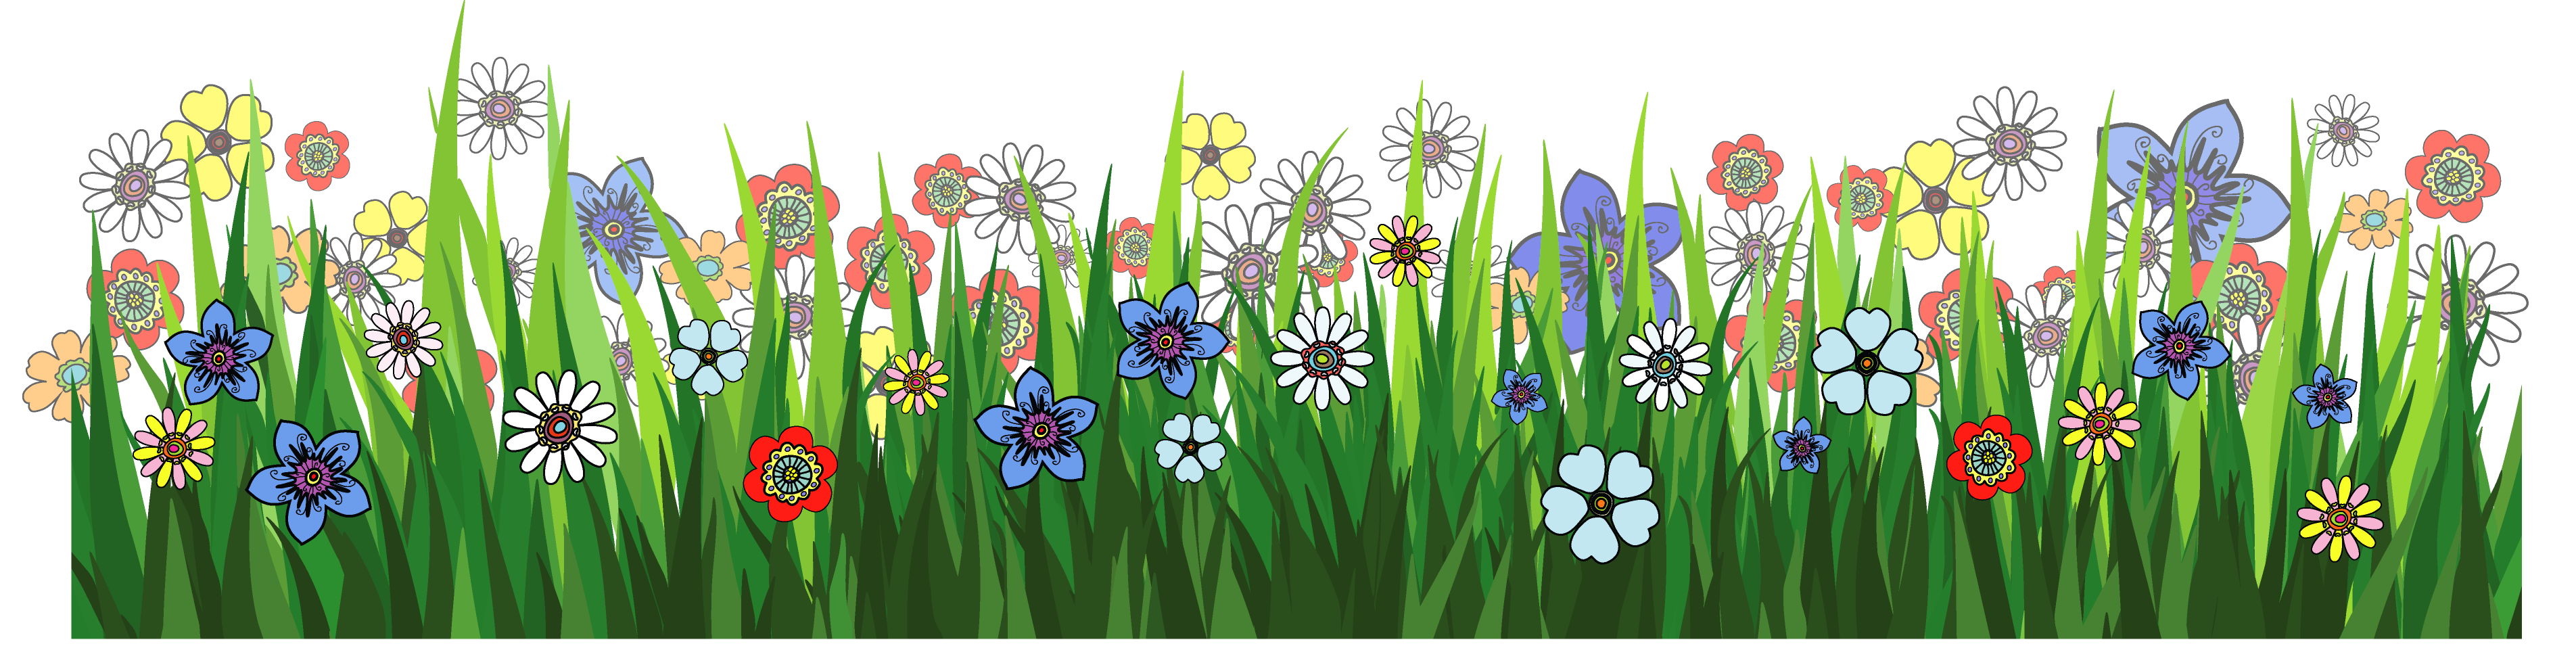 Clipart grass and flowers clipart royalty free library Grass and Flowers Clip Art – Clipart Free Download clipart royalty free library